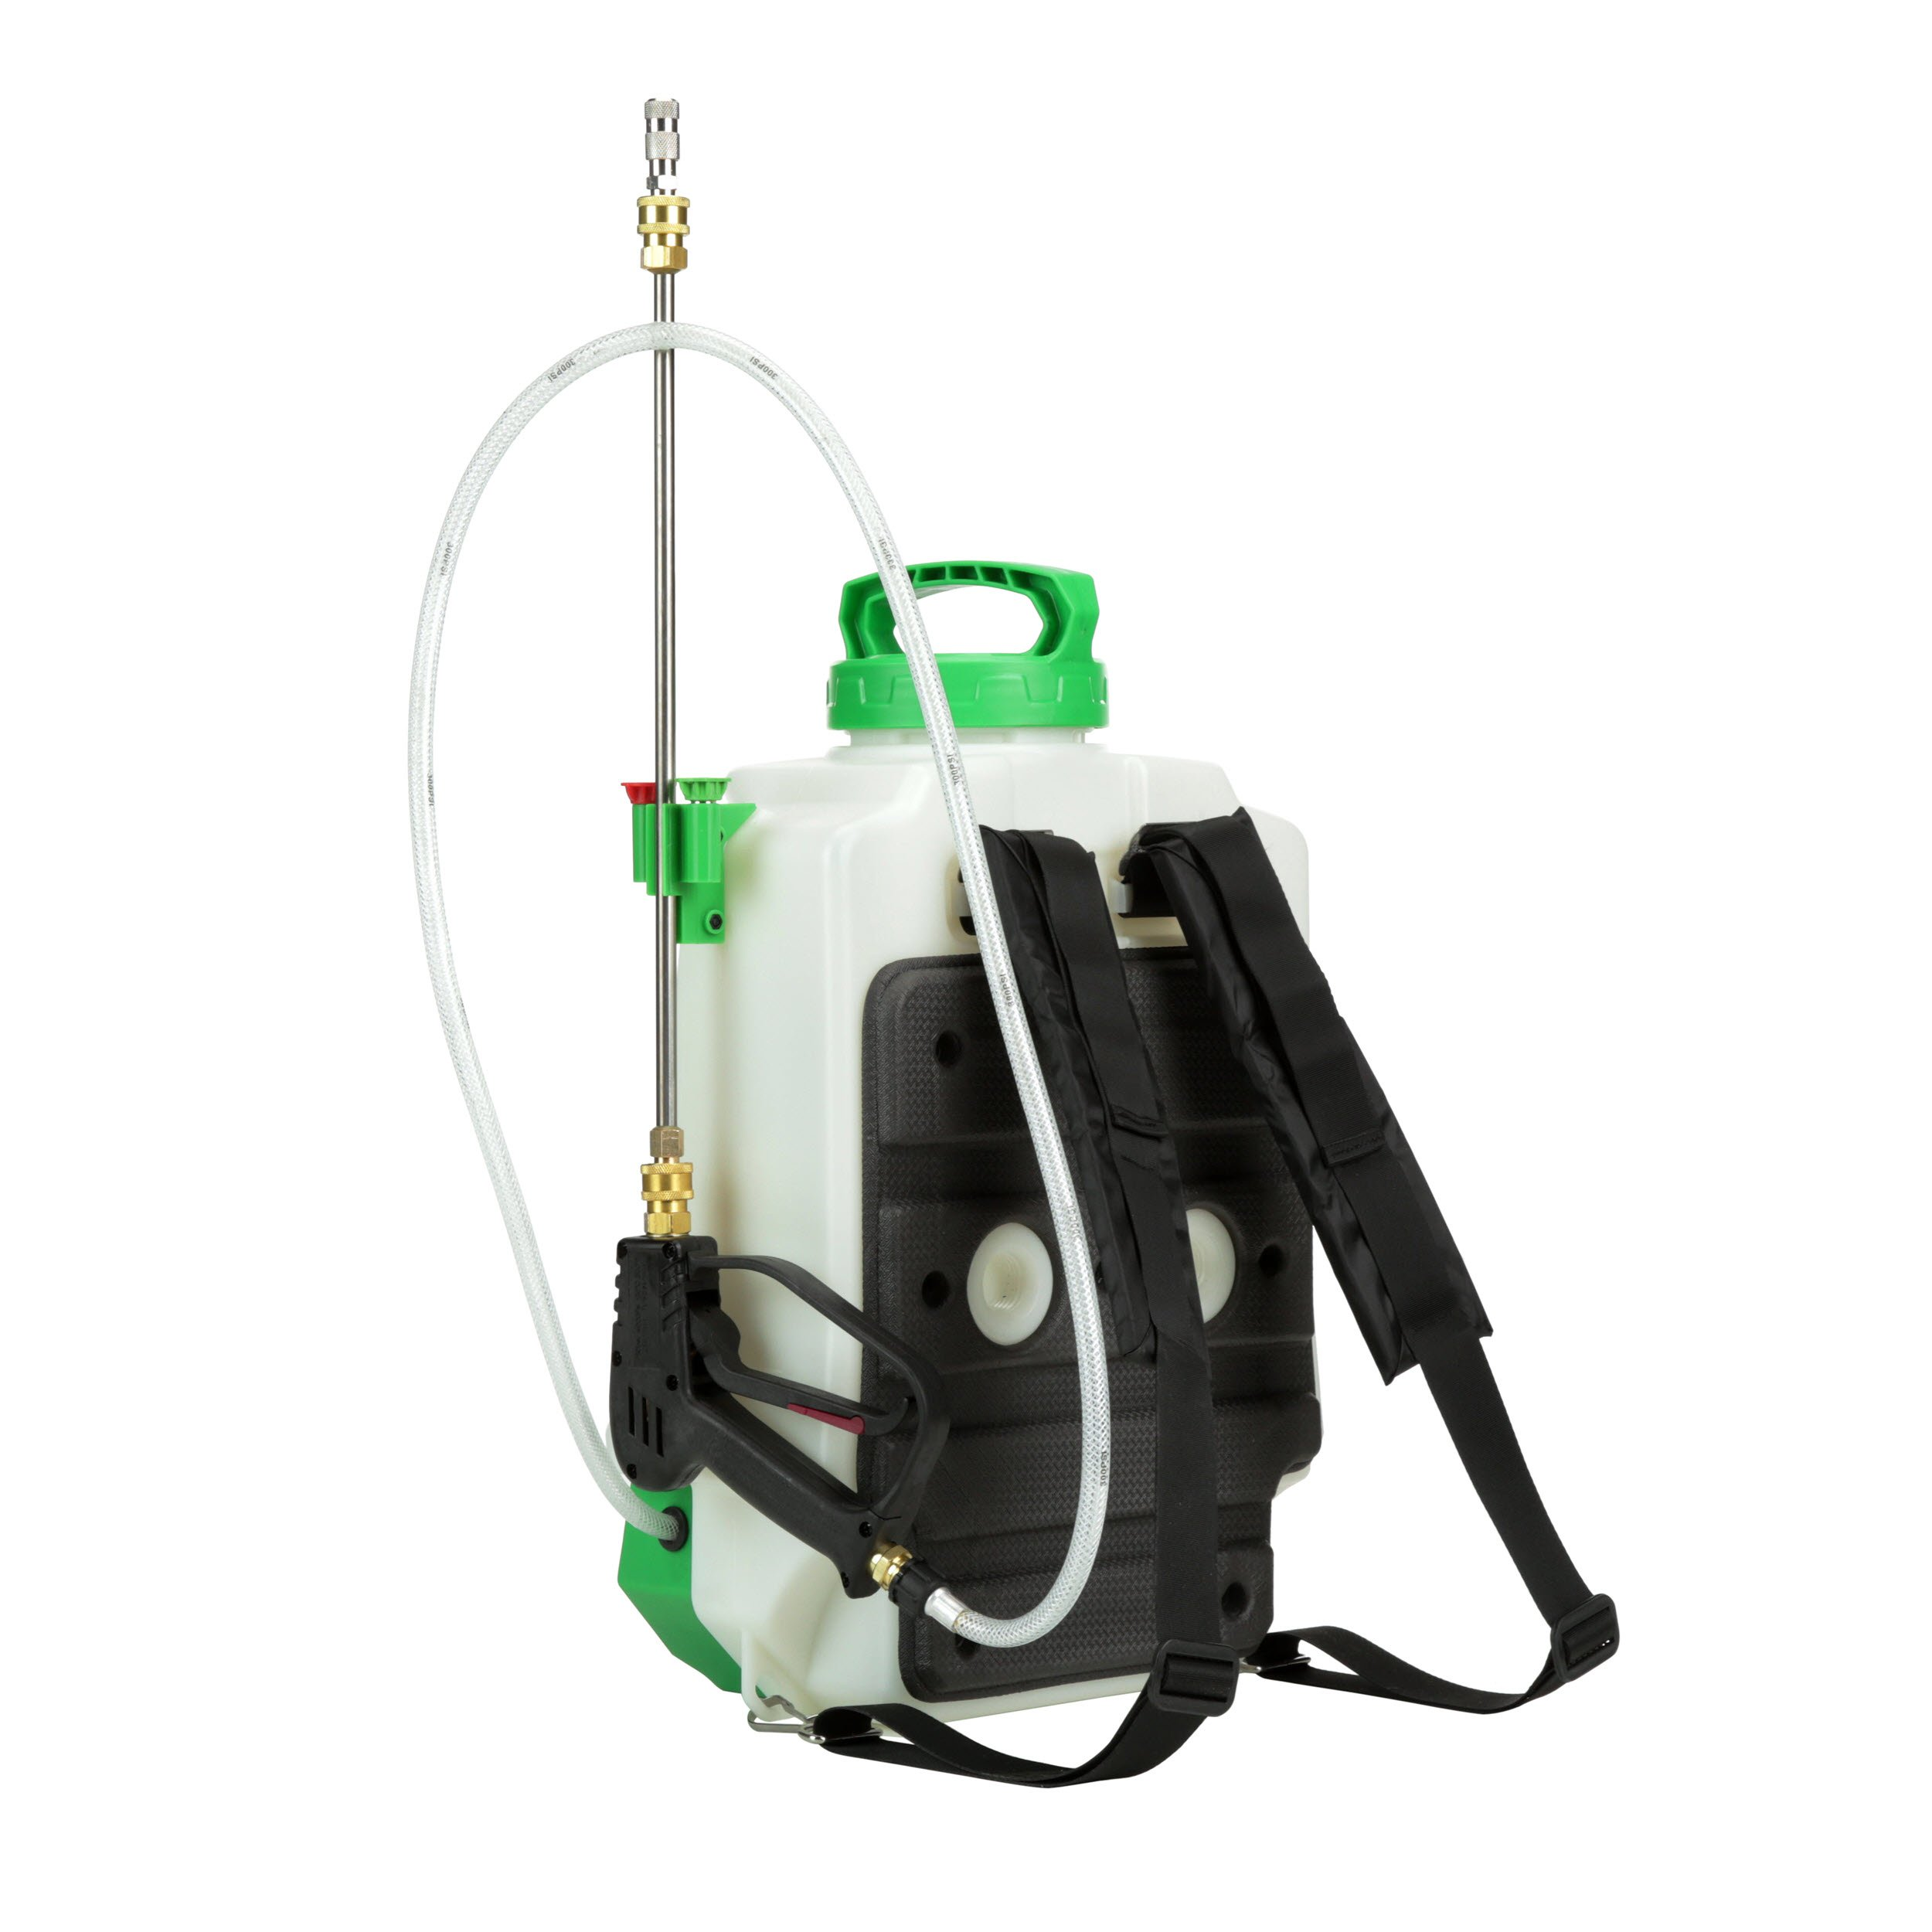 Typhoon 4-Gallon Multi-Use Continuous-Pressure 18V/5.2Ah Lithium-Ion Backpack Sprayer by FlowZone (Image #2)